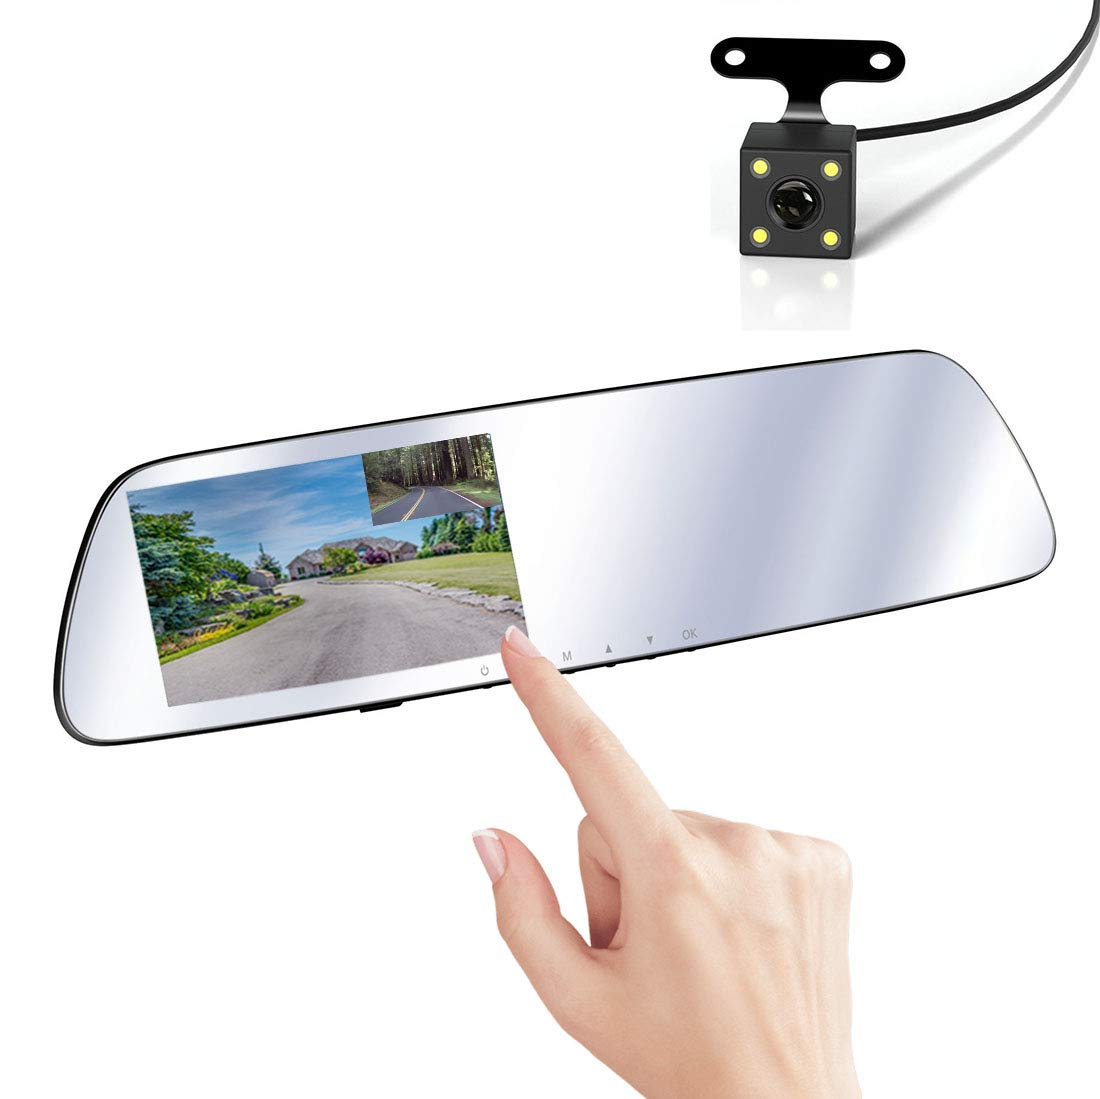 SmarTure 1296P HD Mirror Dash Cam with 5' IPS Touch Screen, Crystal Clear White Mirror, Dual Cameras, Enhanced Night Vision, Parking Assist, Parking Protection Mode M532B